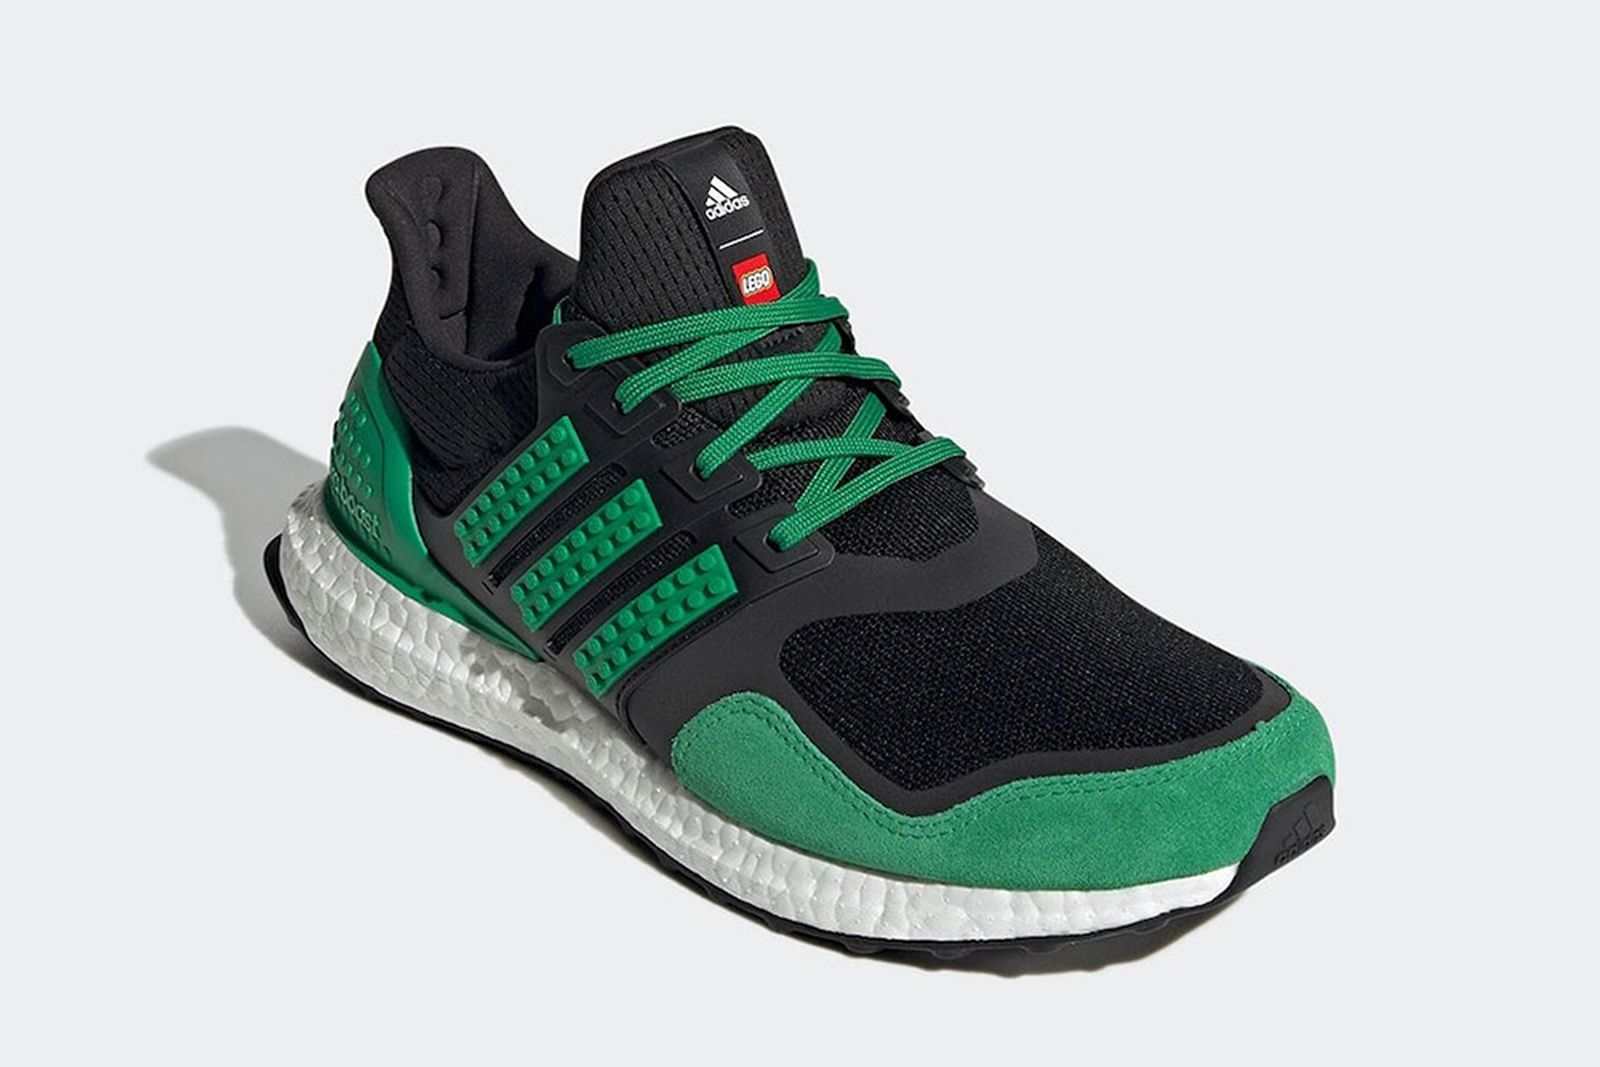 lego-adidas-ultraboost-color-pack-release-date-price-14